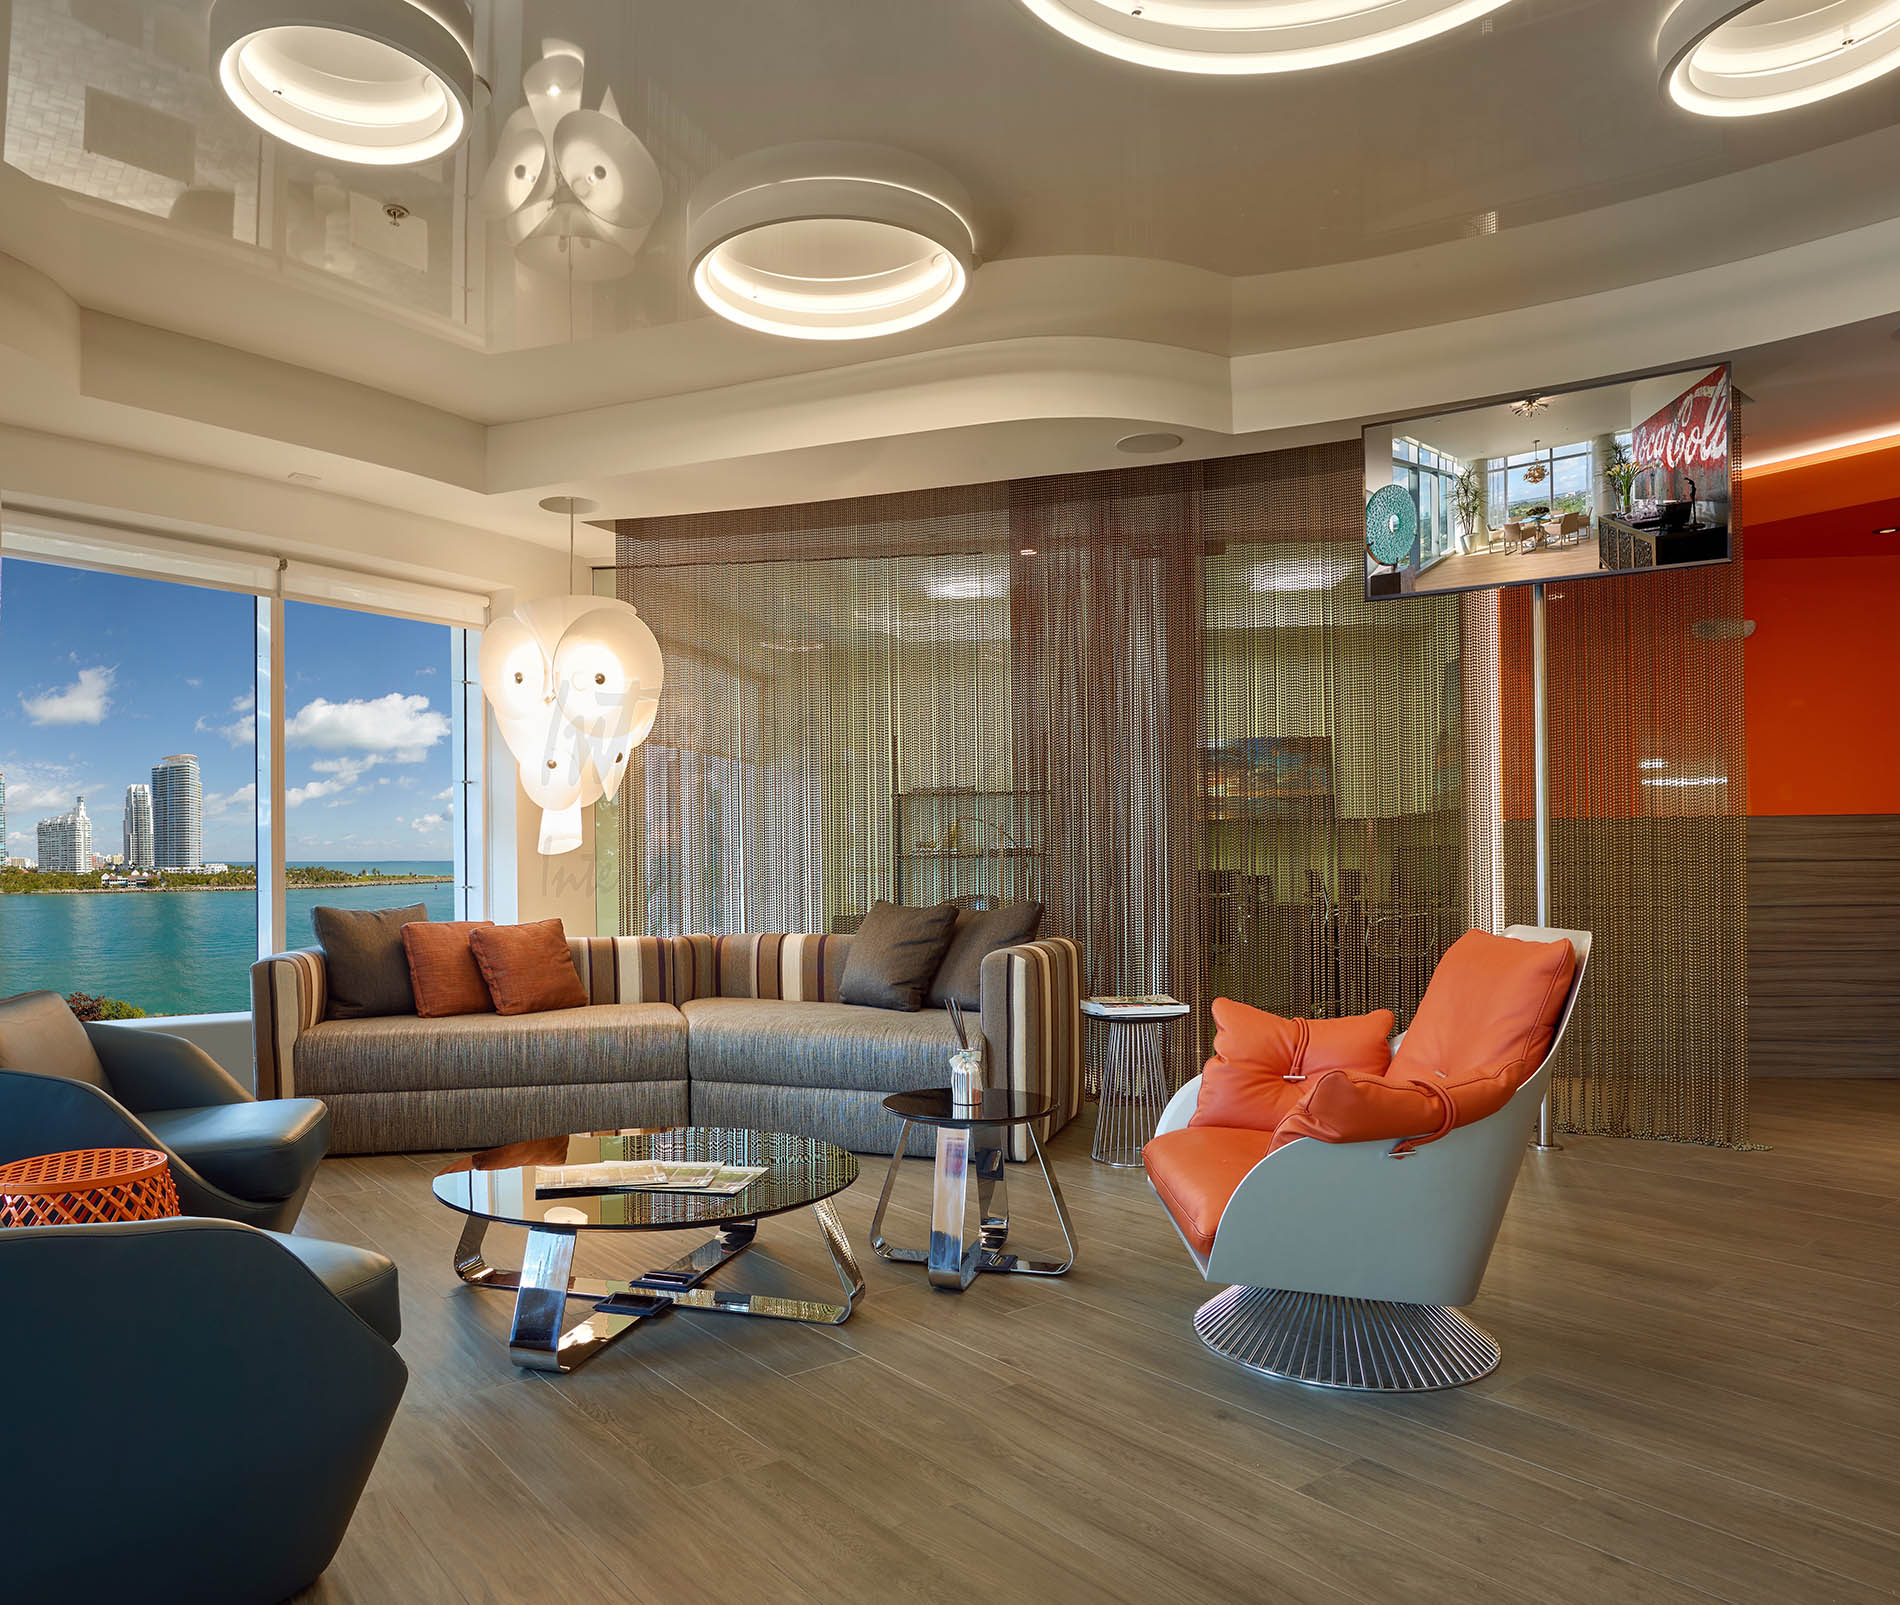 Commercial Interior Design And